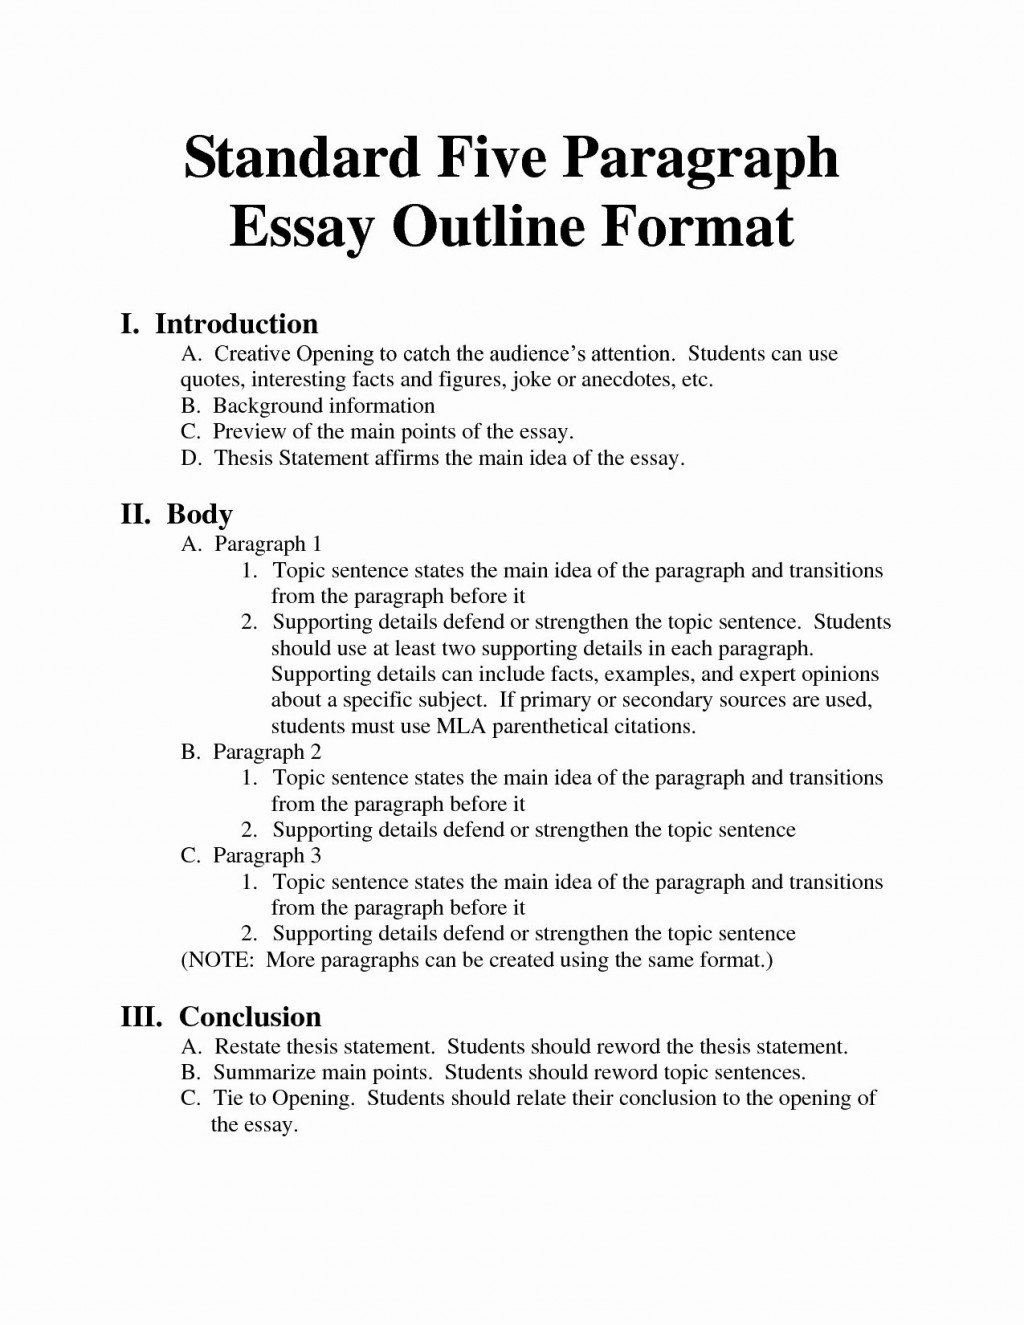 016 Unique Evaluation Essay Outline English Format Movie Of Self Film Template Layout Critical Example Incredible Topics On Horror Movies Definition Large